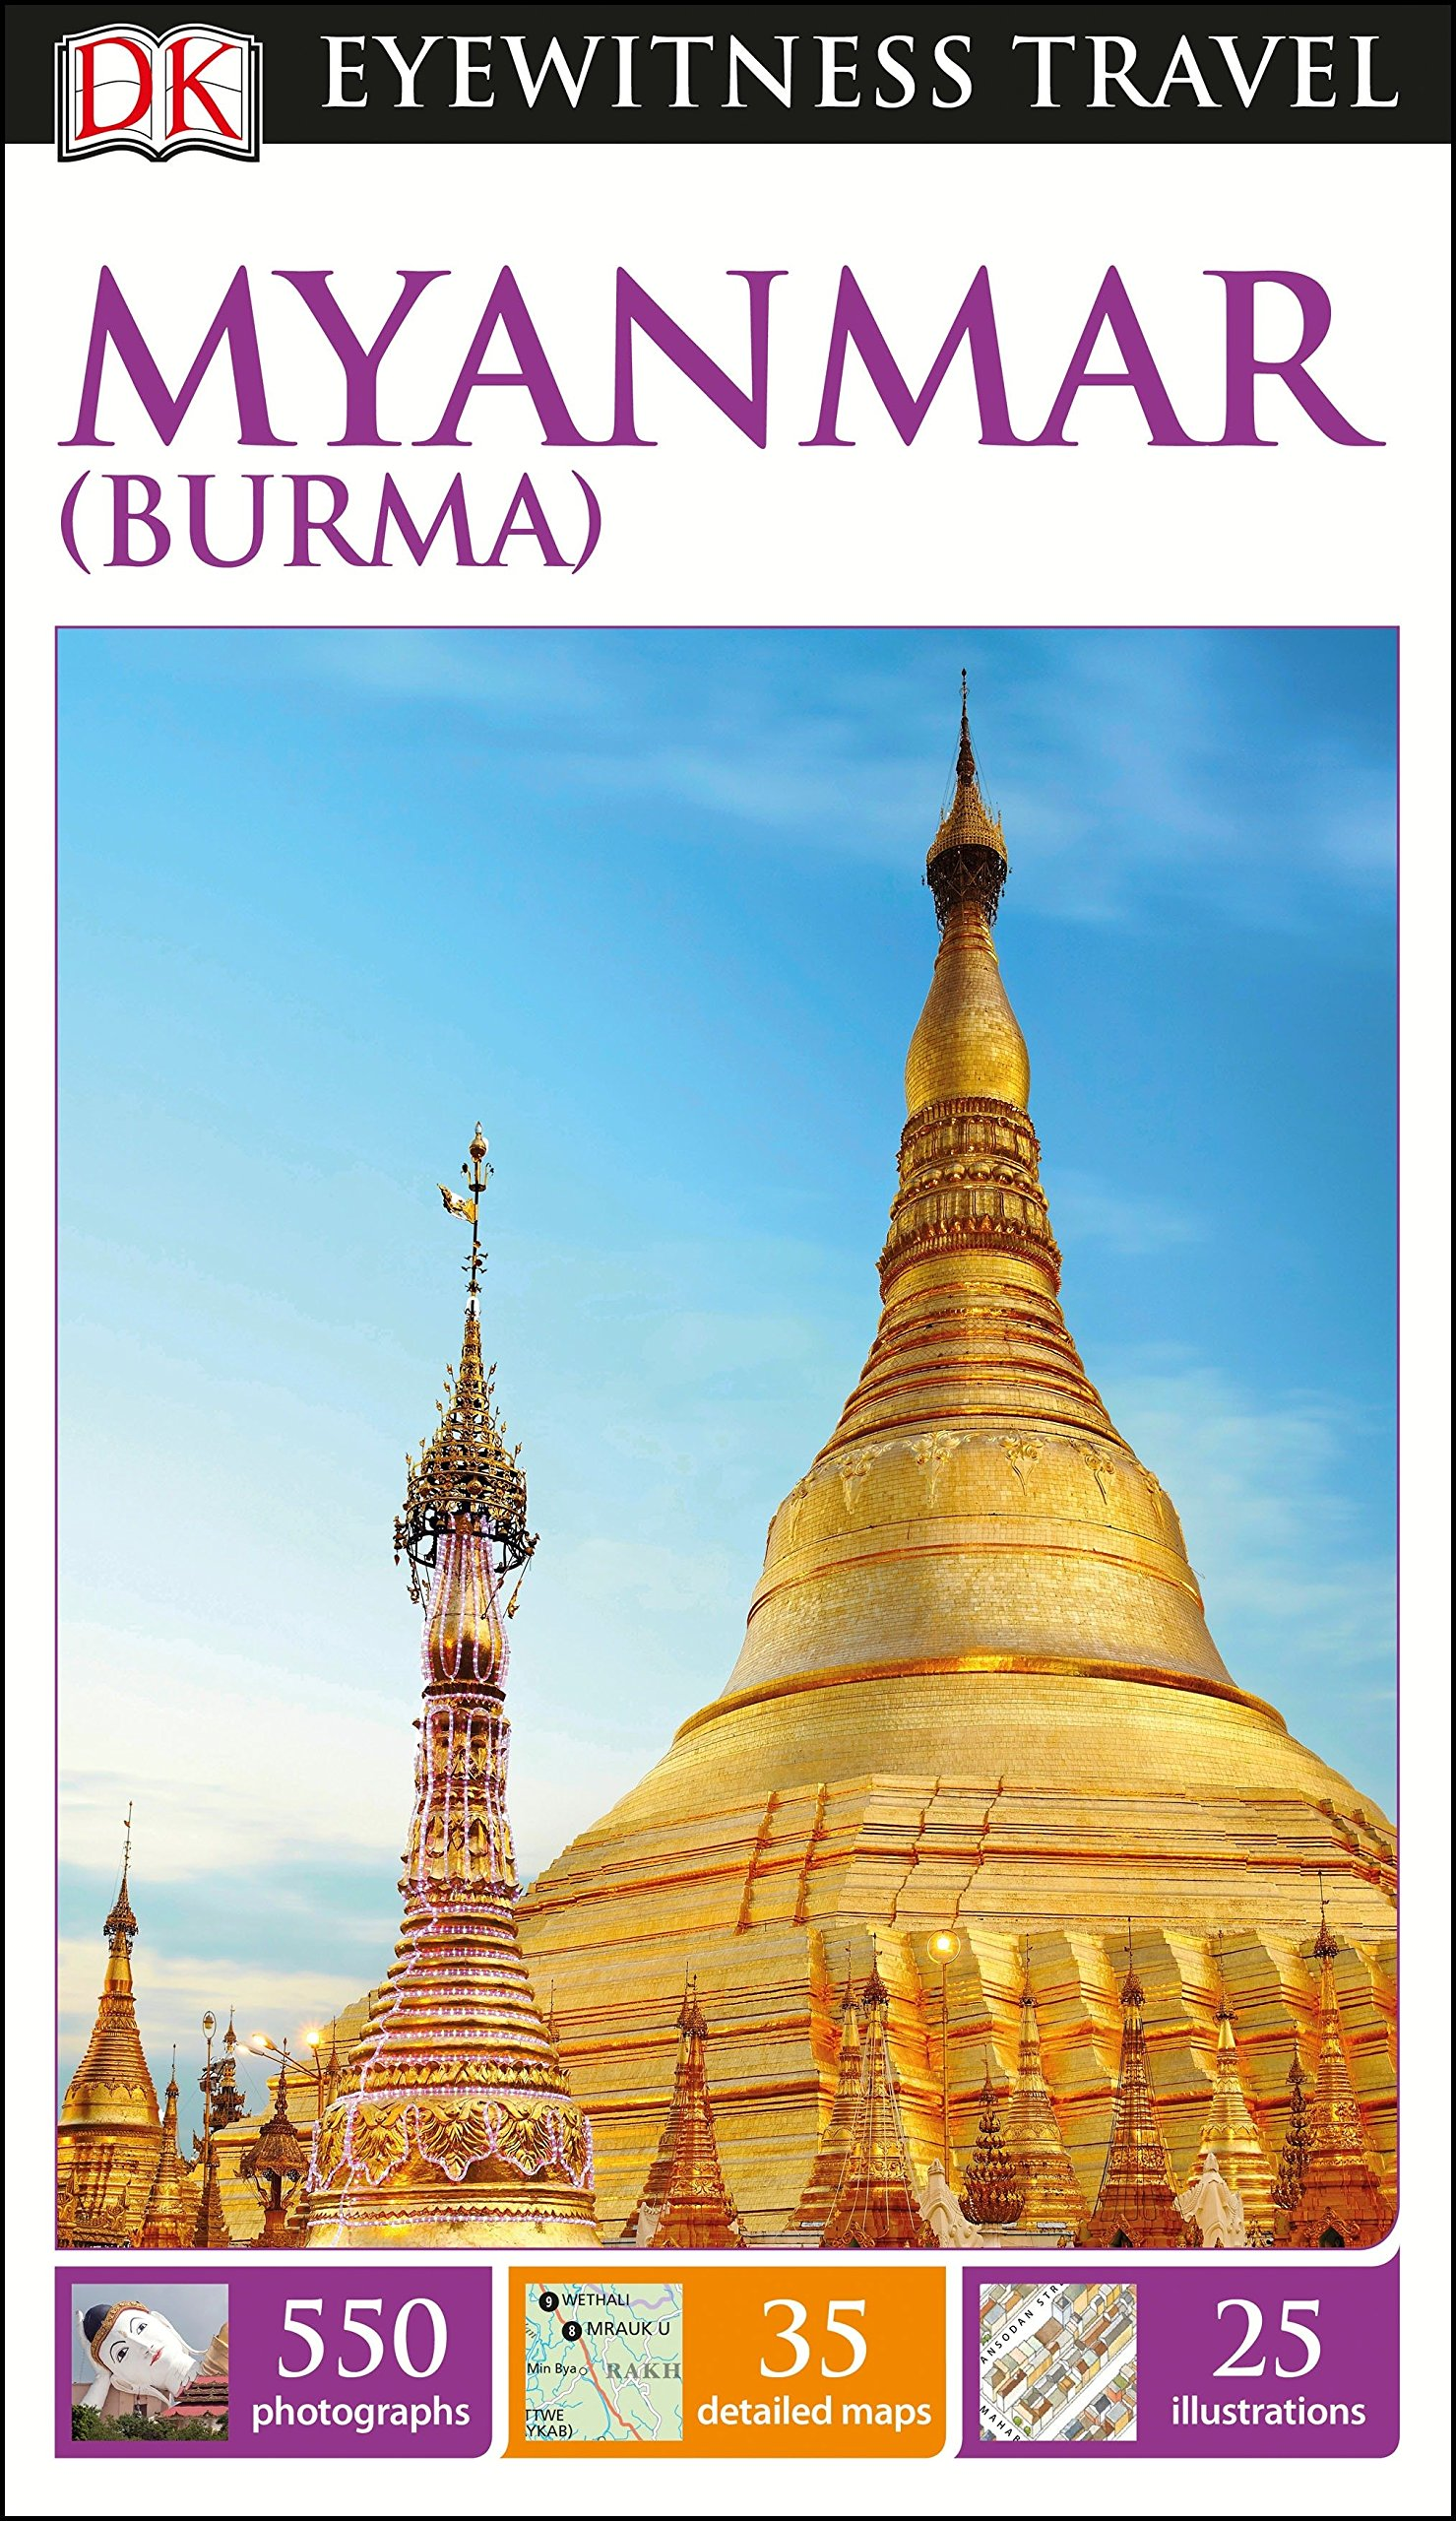 Travelling Homebody - DK Eyewitness Travel Guide - What to do in Myanmar Burma